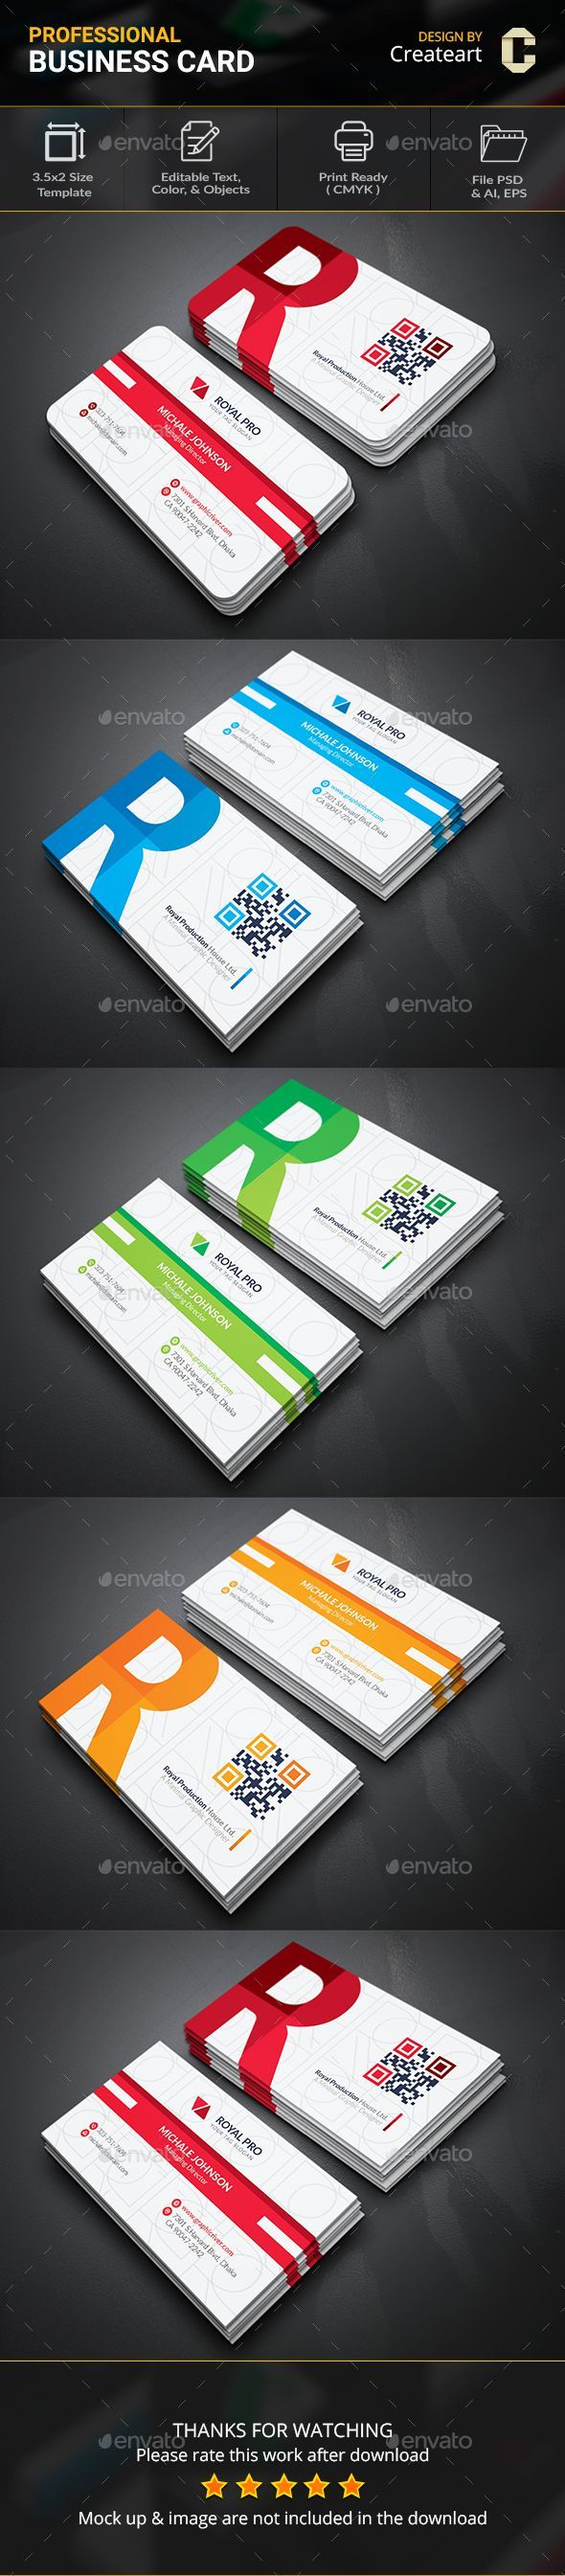 32 Best Corporate Business Card Images On Pinterest Business Cards